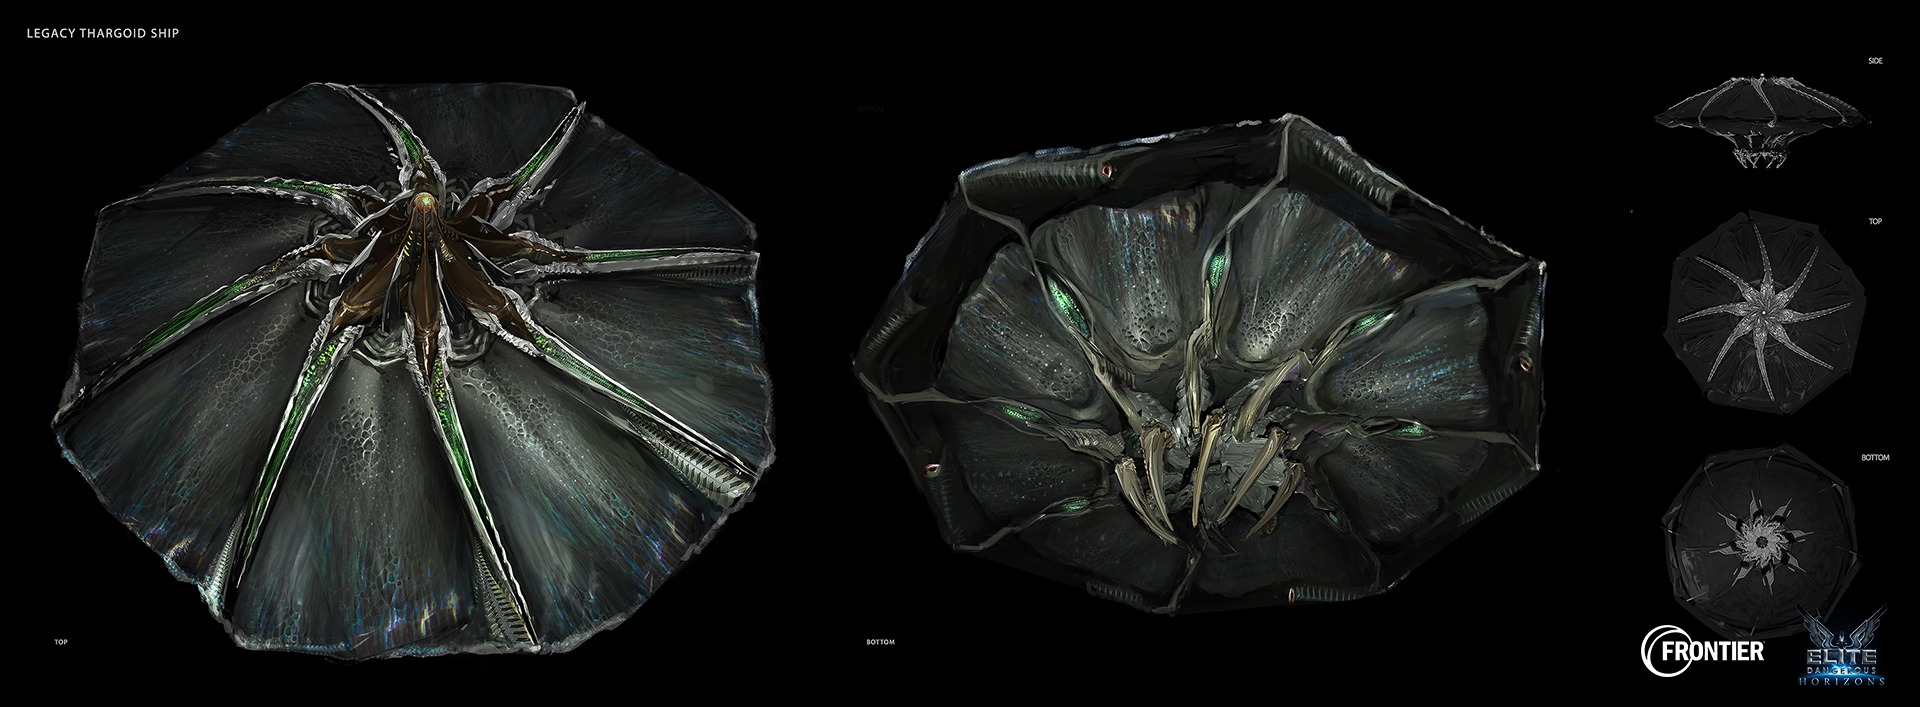 Legacy_Thargoid_Top_06.jpg